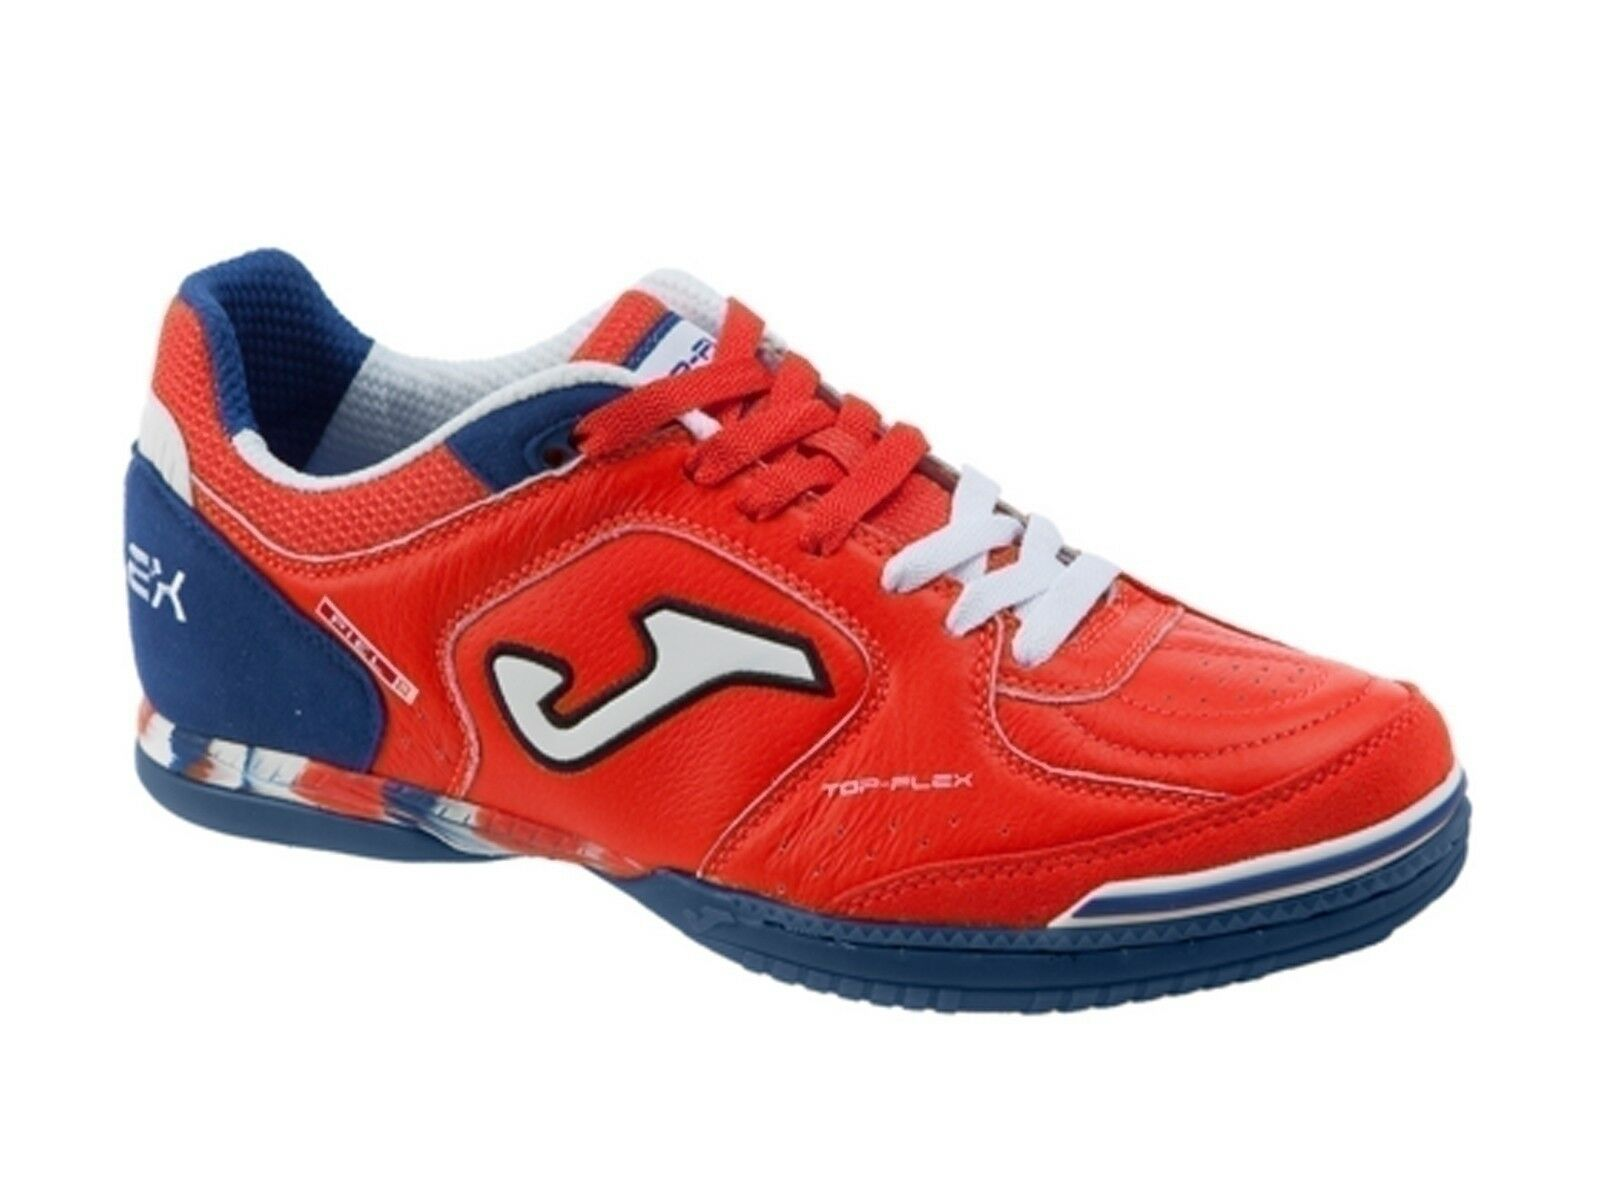 Zapatos hombres JOMA  TOPS 606 PS  TOP FLEX INDOOR rojo NAVY